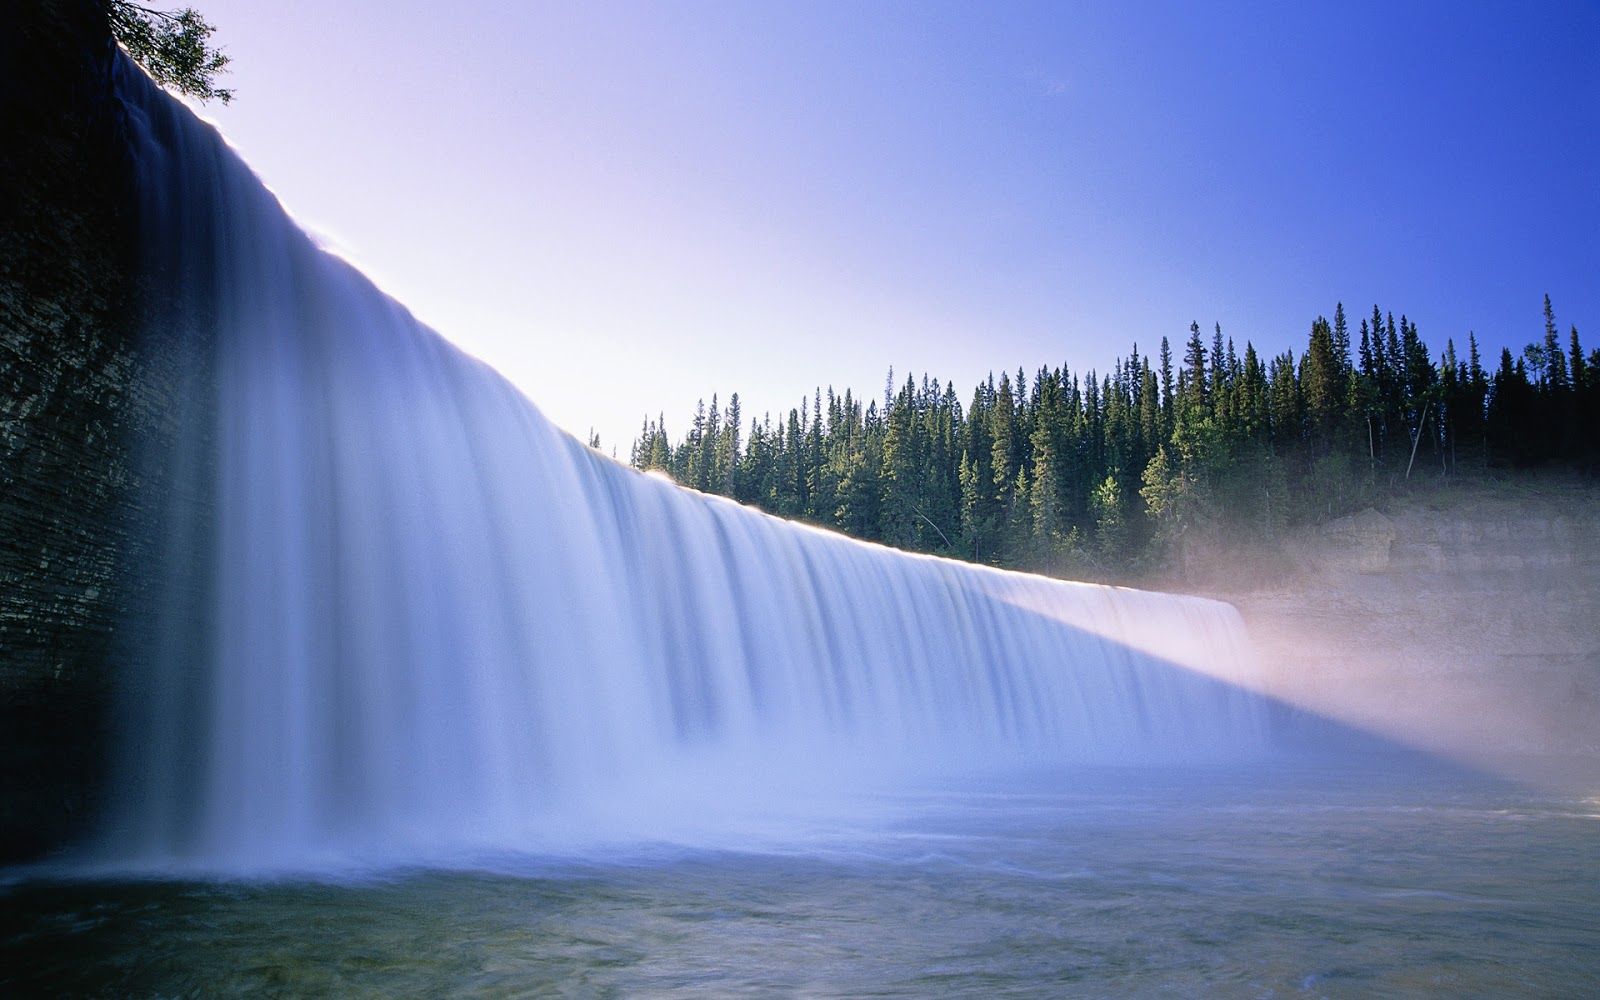 Fantastic dam water flow scenery wallpaper   HydroResearch 1600x1000